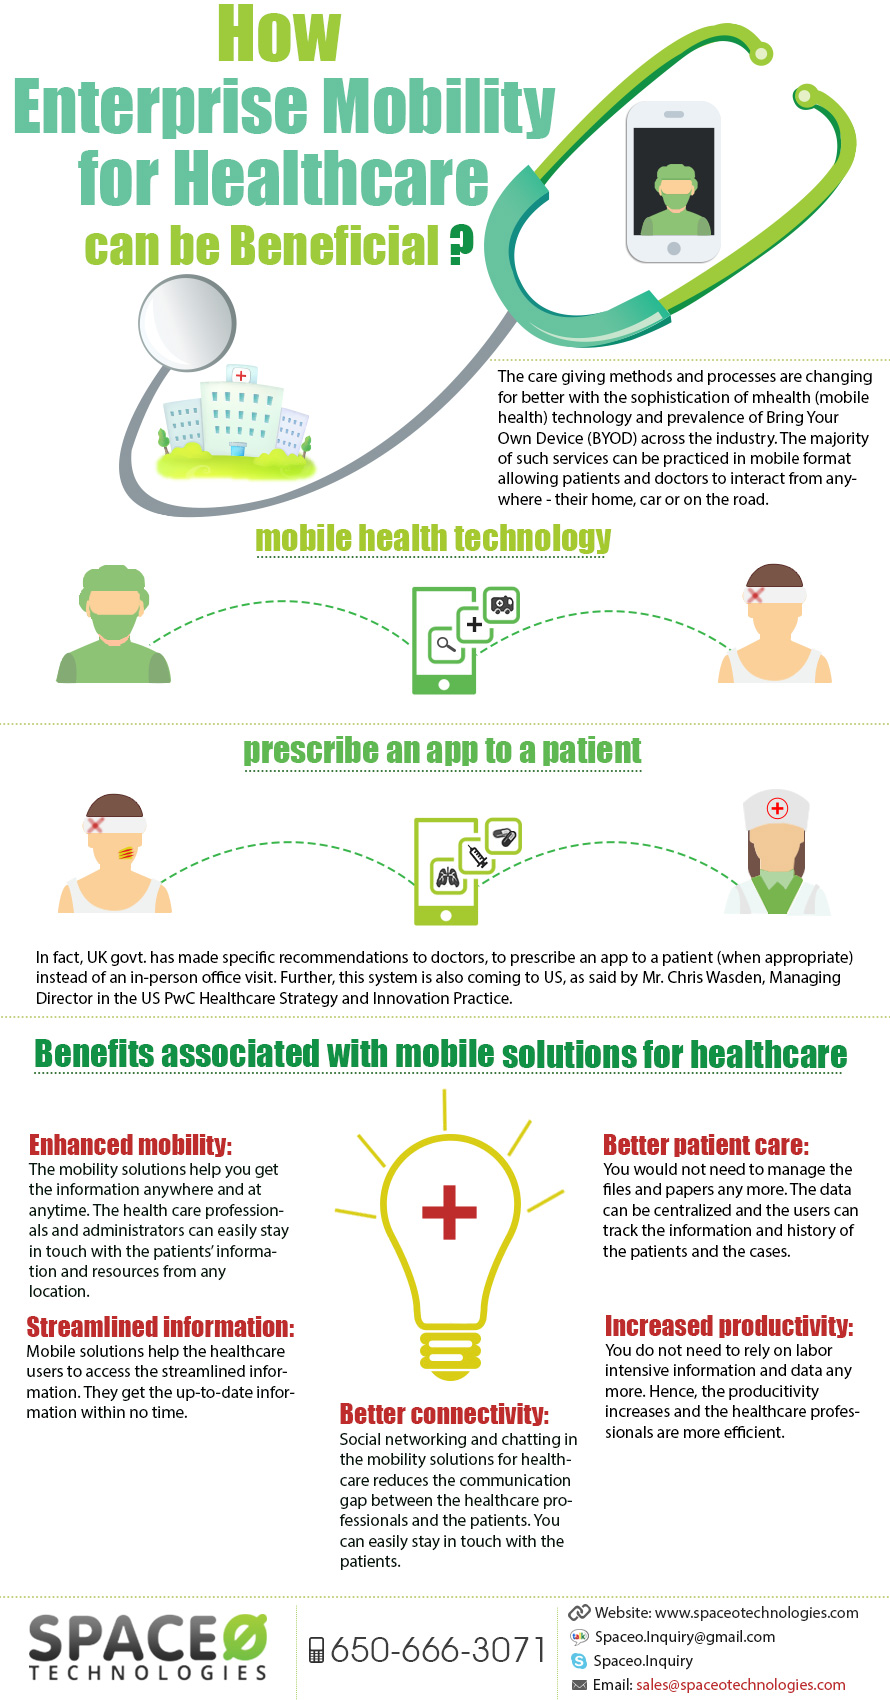 Enterprise Mobility Gains for Healthcare Organizations